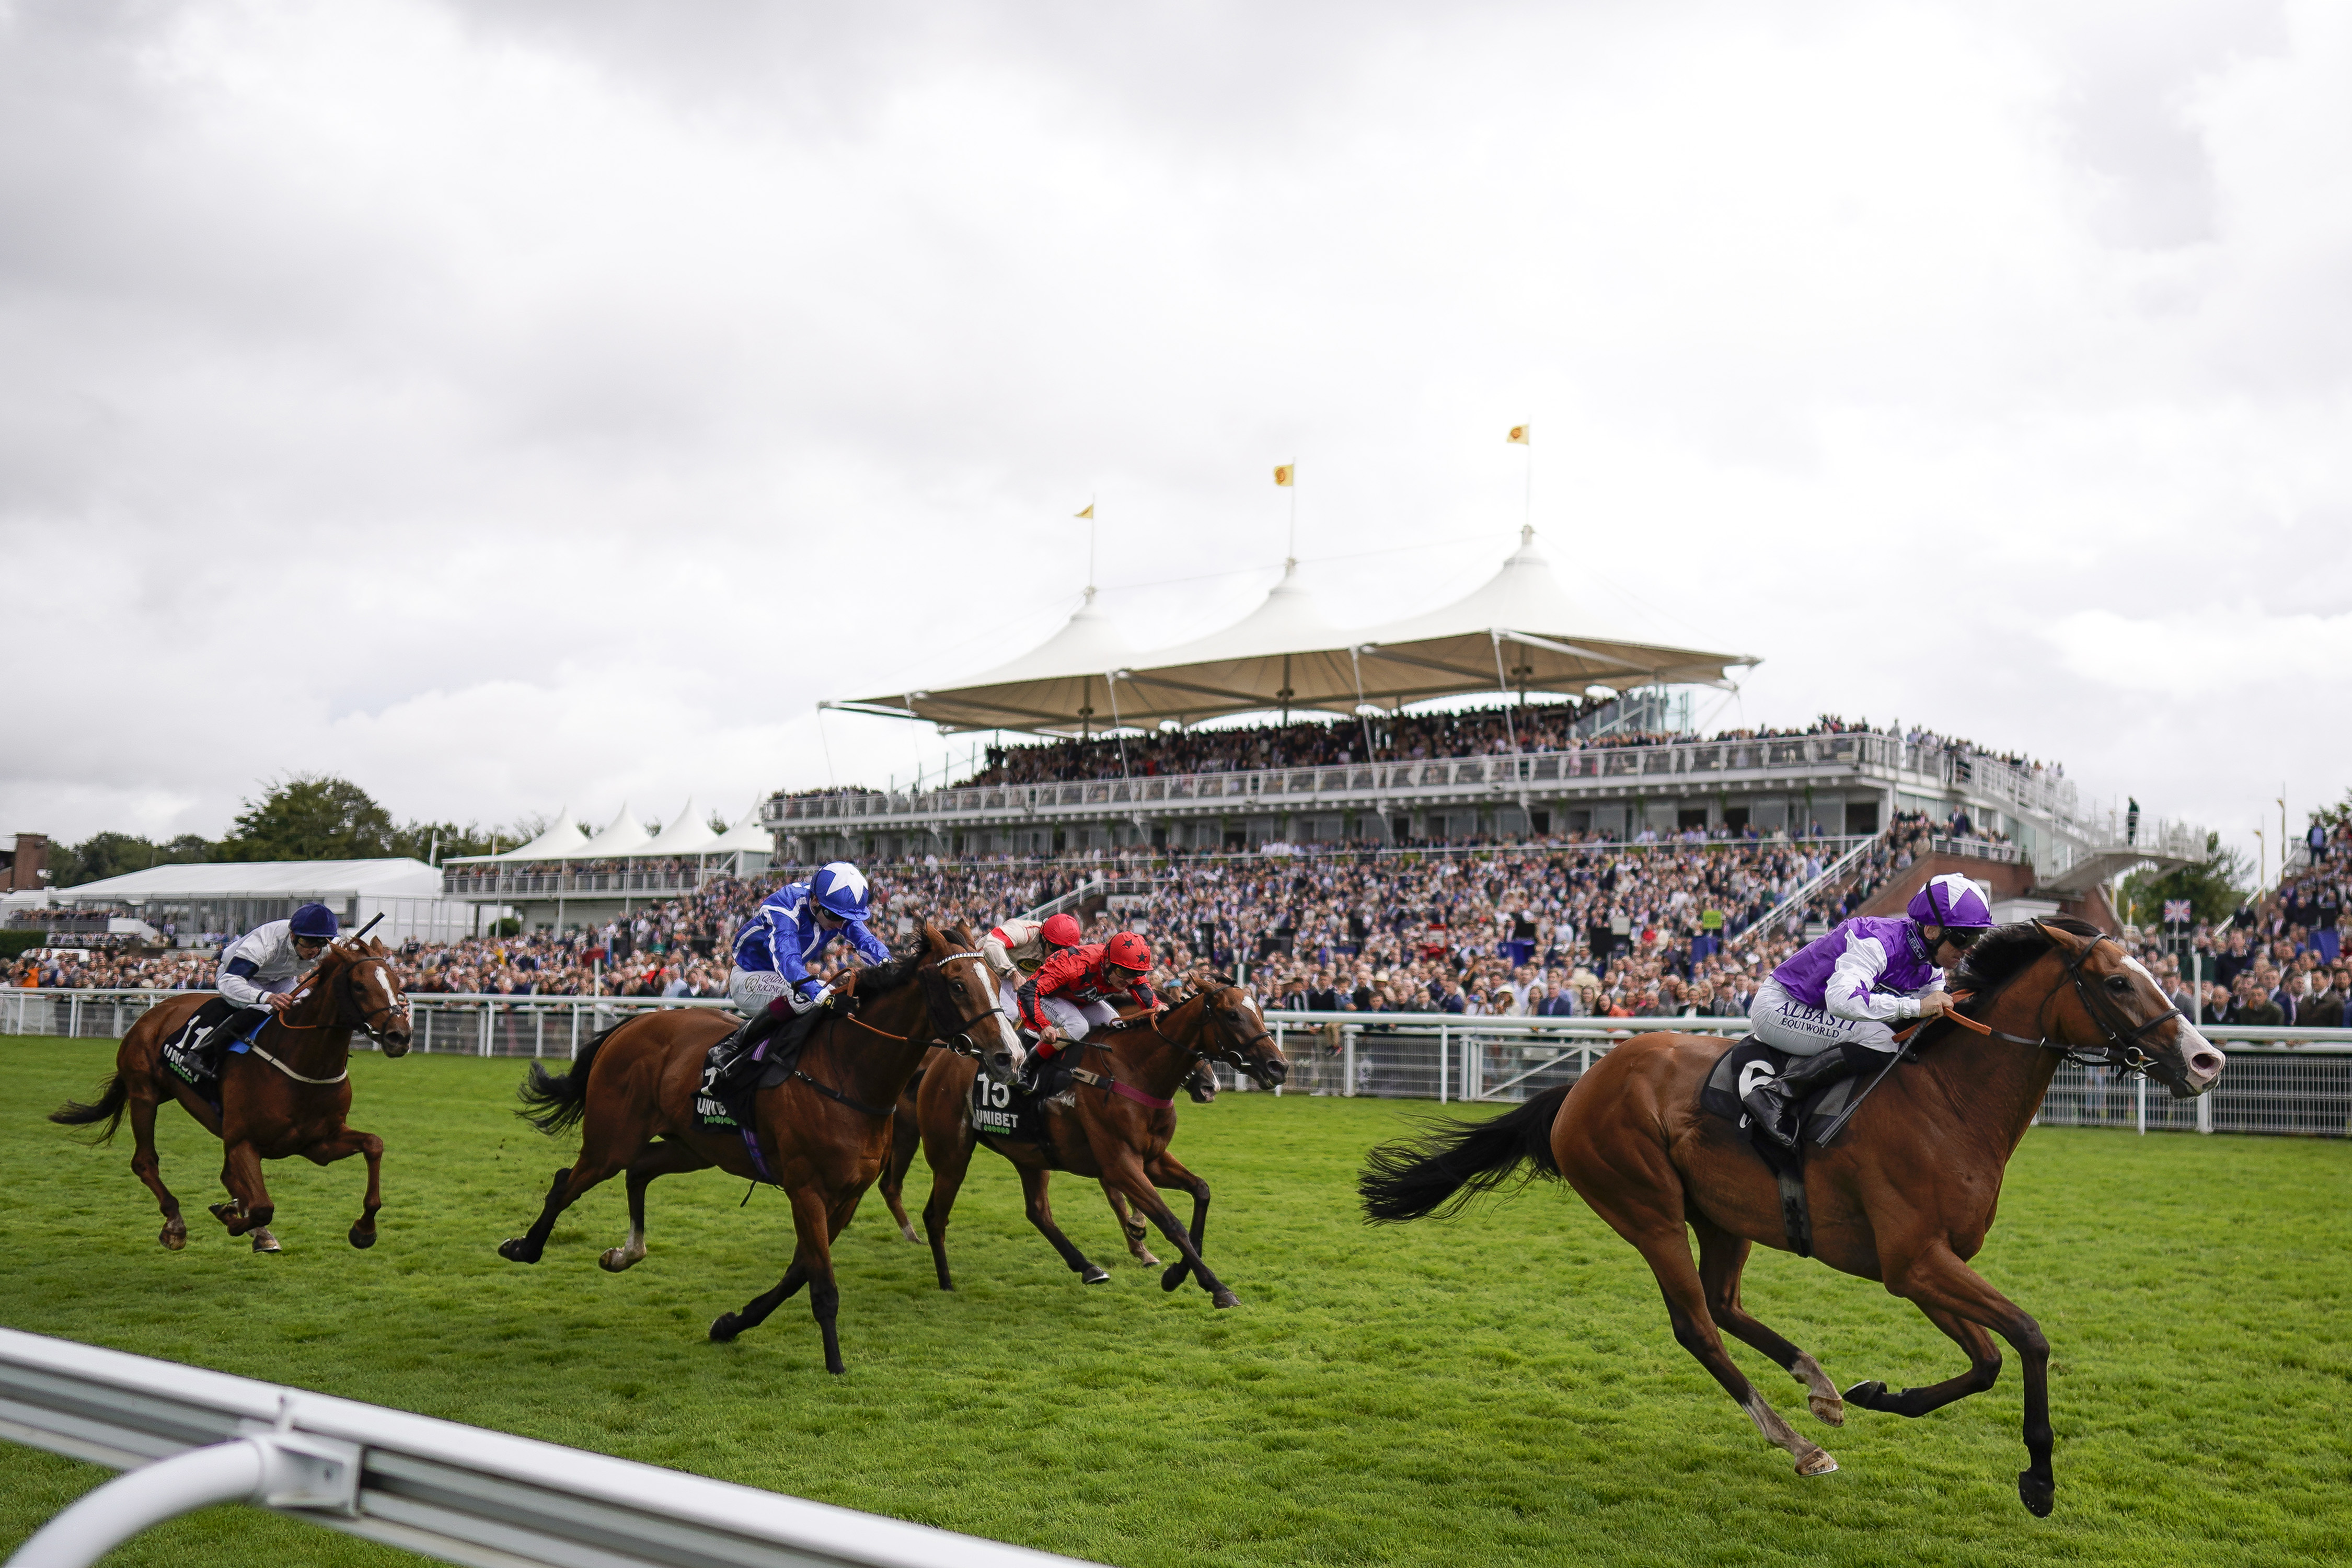 <p>CHICHESTER, ENGLAND - JULY 30: Pat Dobbs riding Calling The Wind win The Unibet 3 Boosts A Day Goodwood Handicap during the Qatar Goodwood Festival at Goodwood Racecourse on July 30, 2021 in Chichester, England. (Photo by Alan Crowhurst/Getty Images)</p>